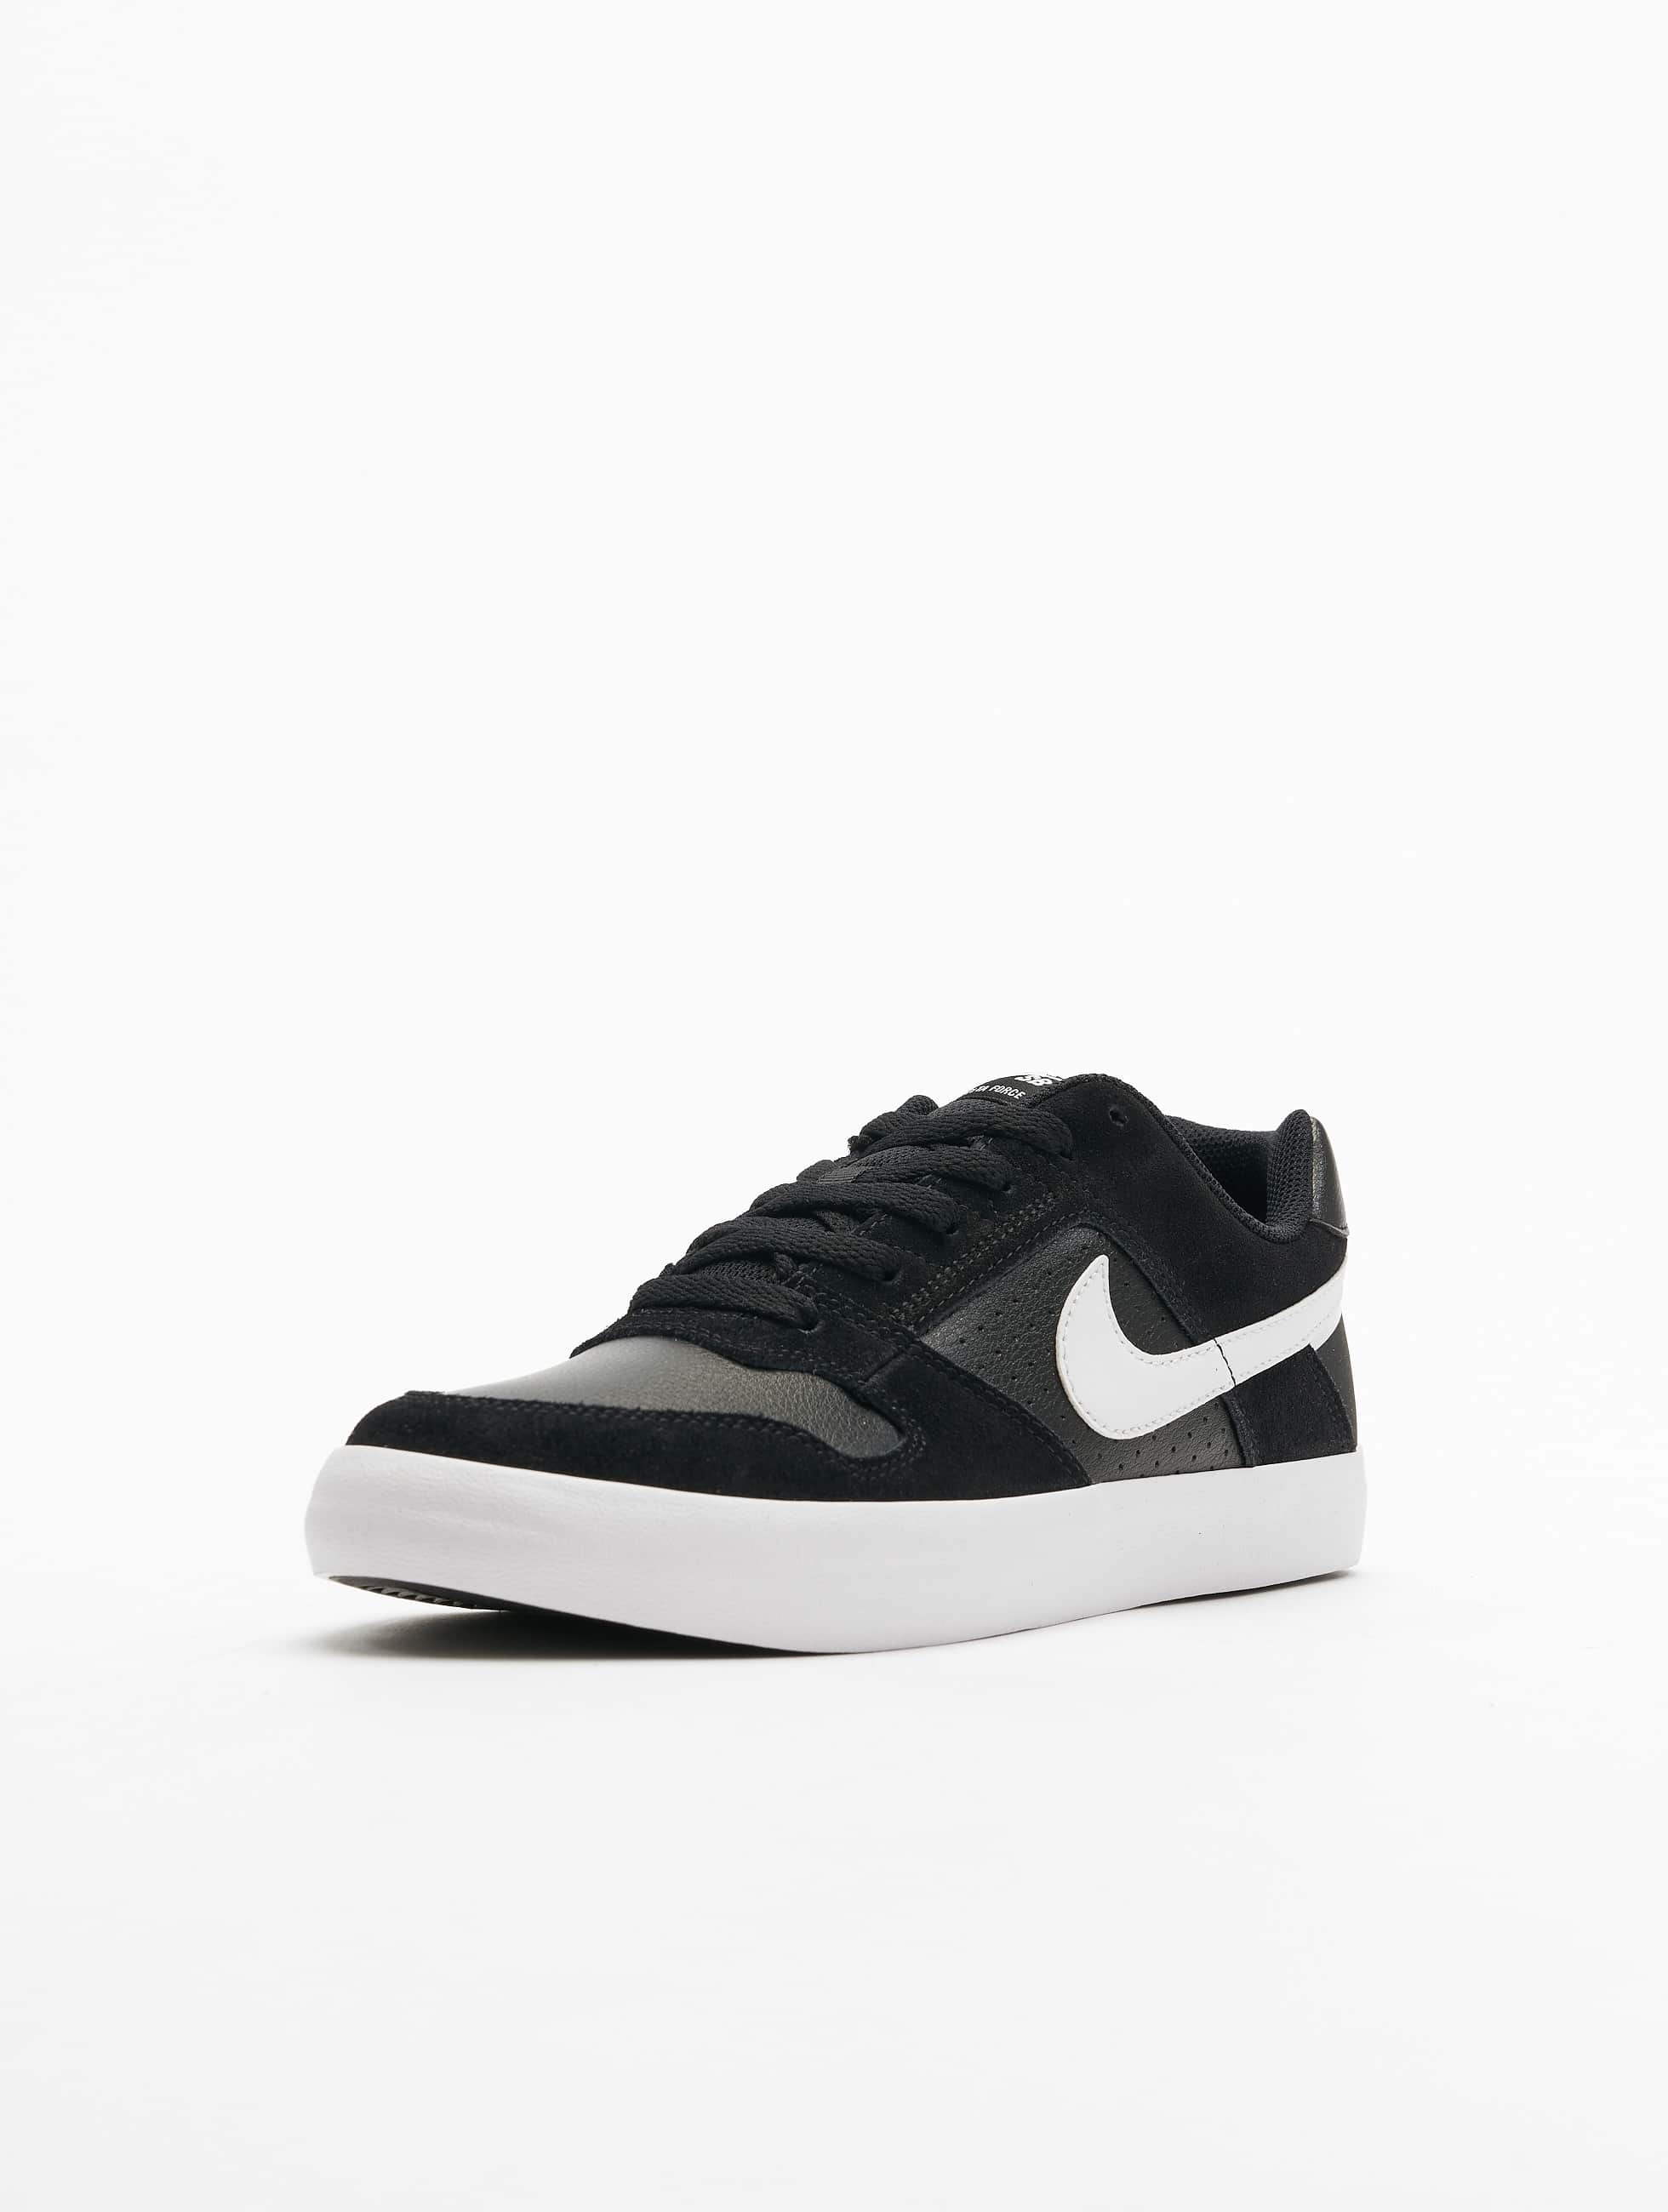 Nike Sneakers SB Delta Force Vulc Skateboarding black